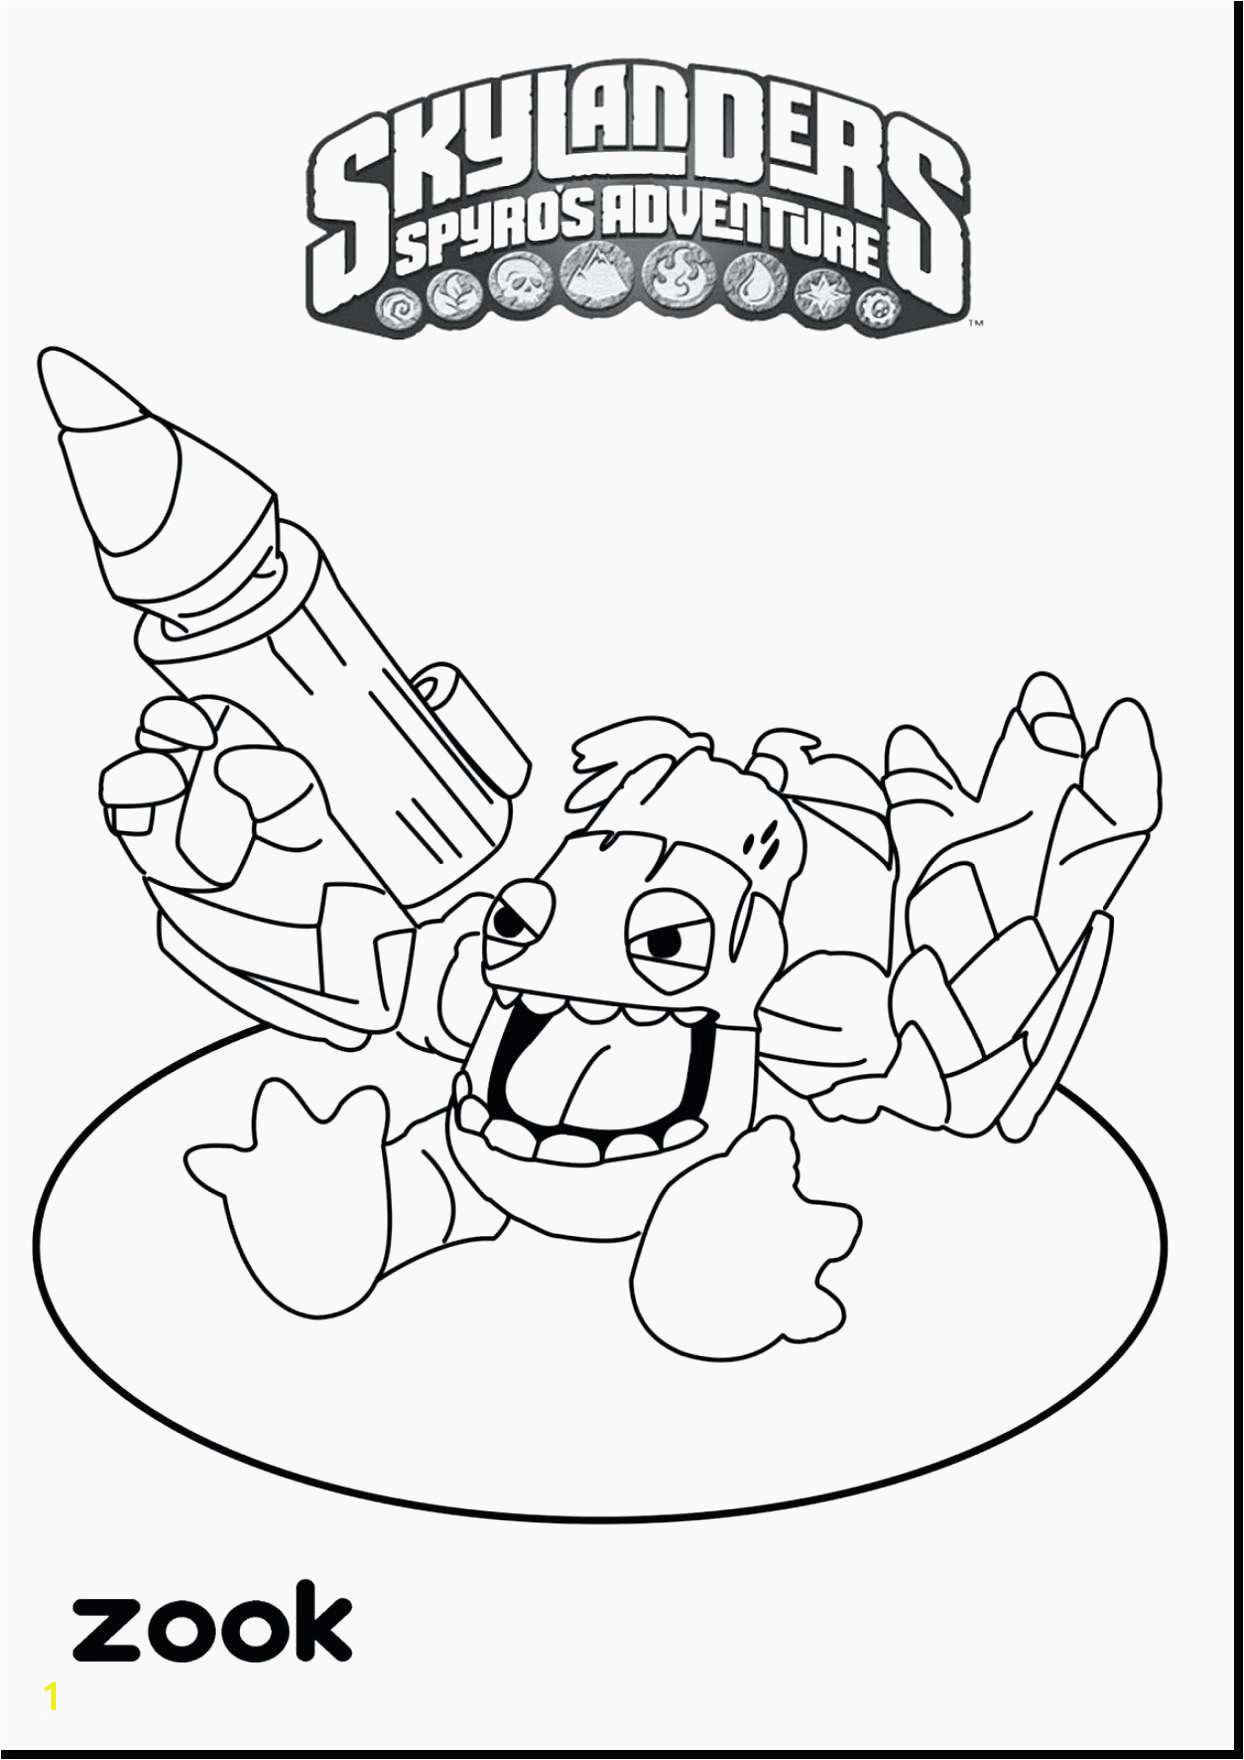 Microbiology Coloring Pages Bunny Rabbit Coloring Pages Beautiful Best Bunny Print Out Coloring